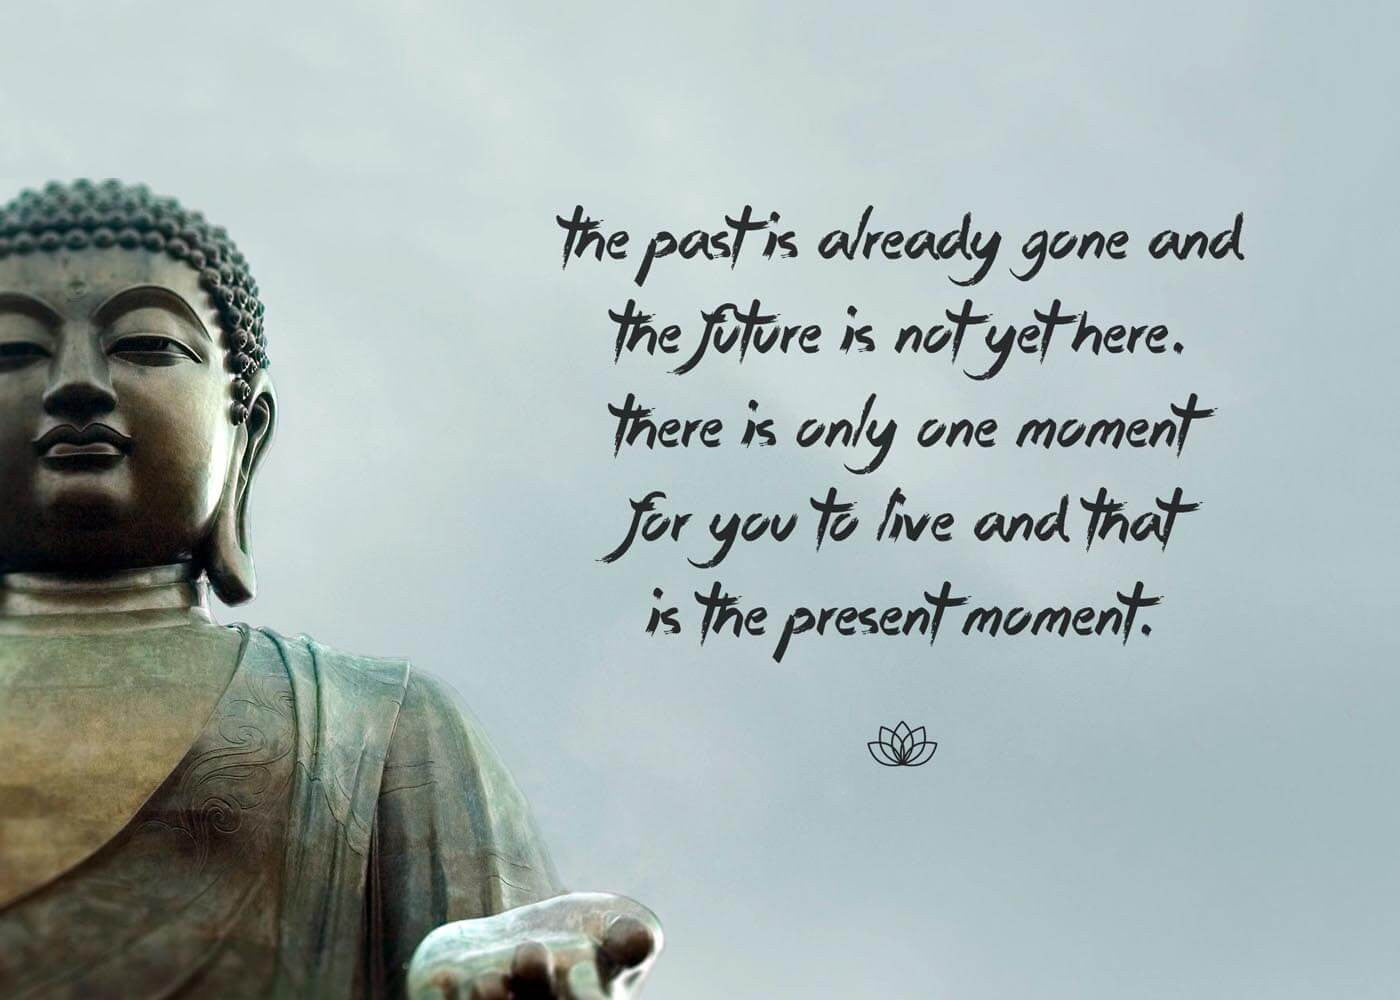 Gautama Buddha Quotes Gautam Buddha Inspirational Quote  There Is Only One Moment For